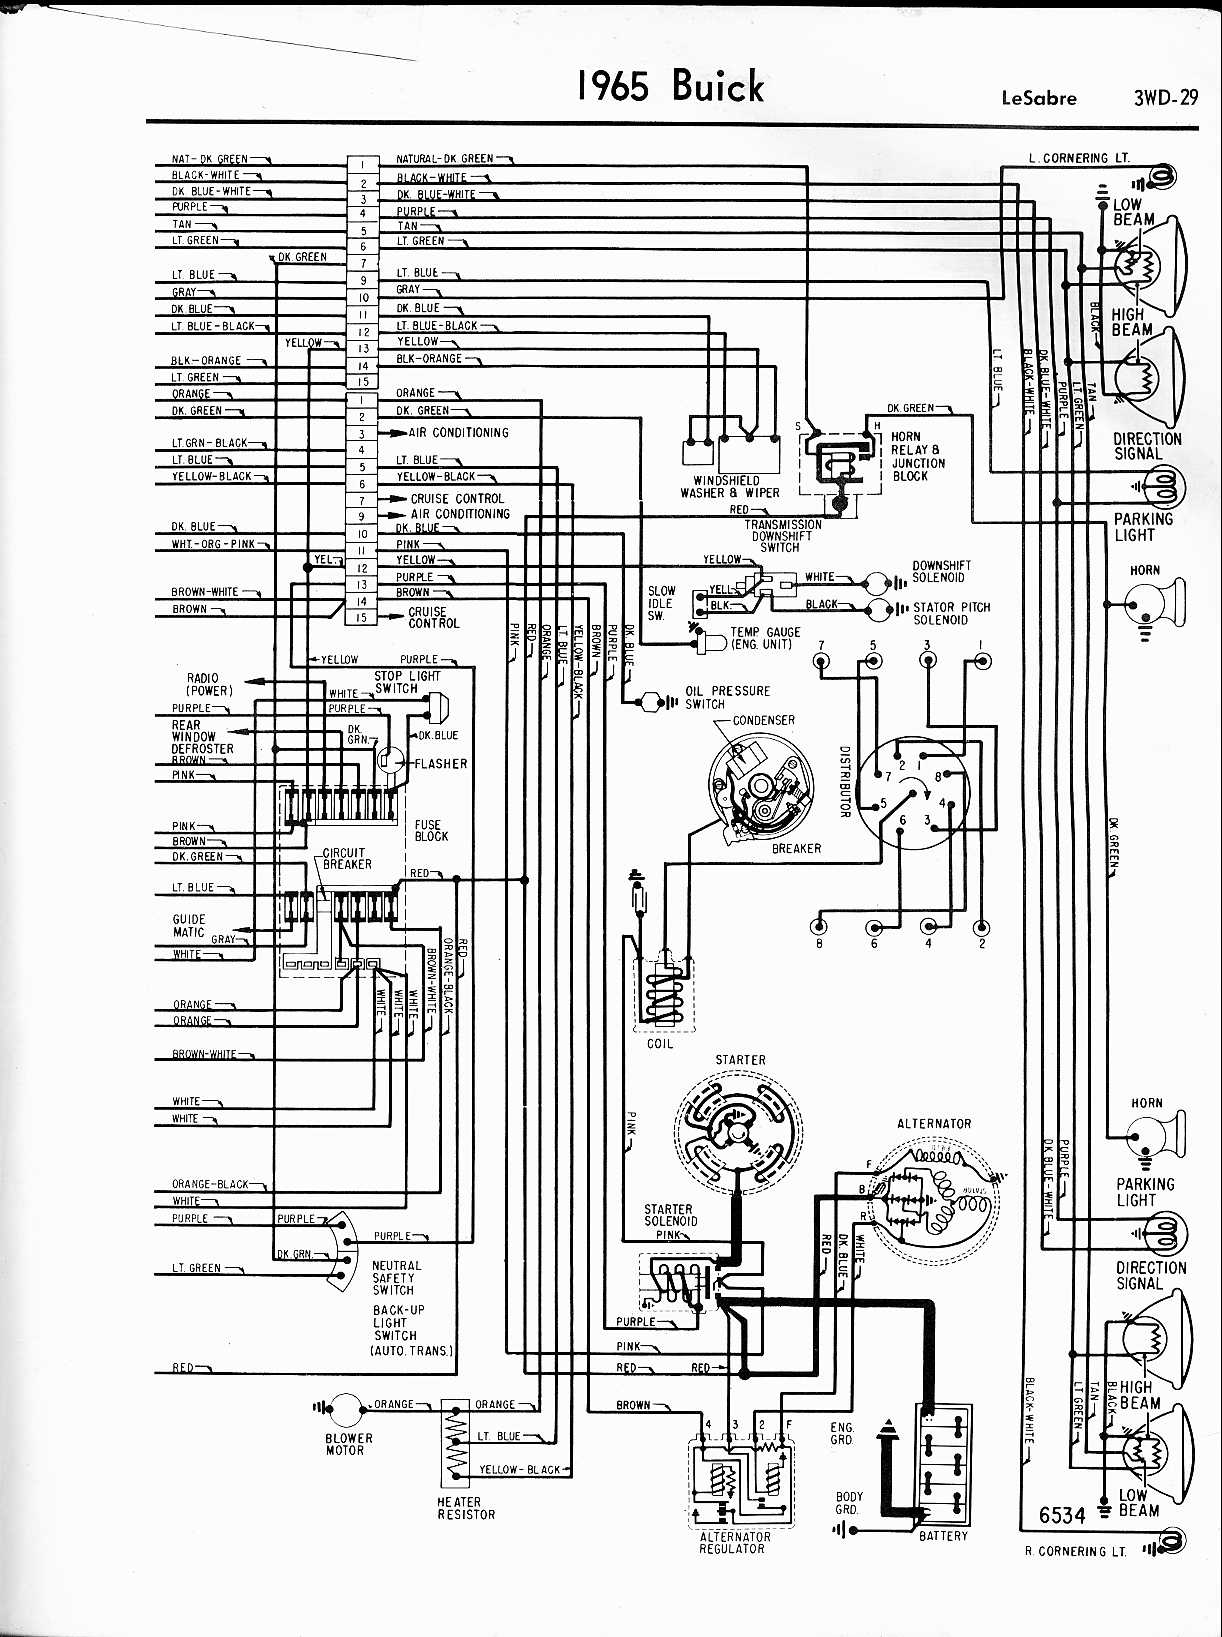 72 Mustang Fuse Box Diagram Wiring Electricity Basics 101 07 95 Buick Lesabre Alternator For Rh Prestonfarmmotors Co 96 Ford 2007